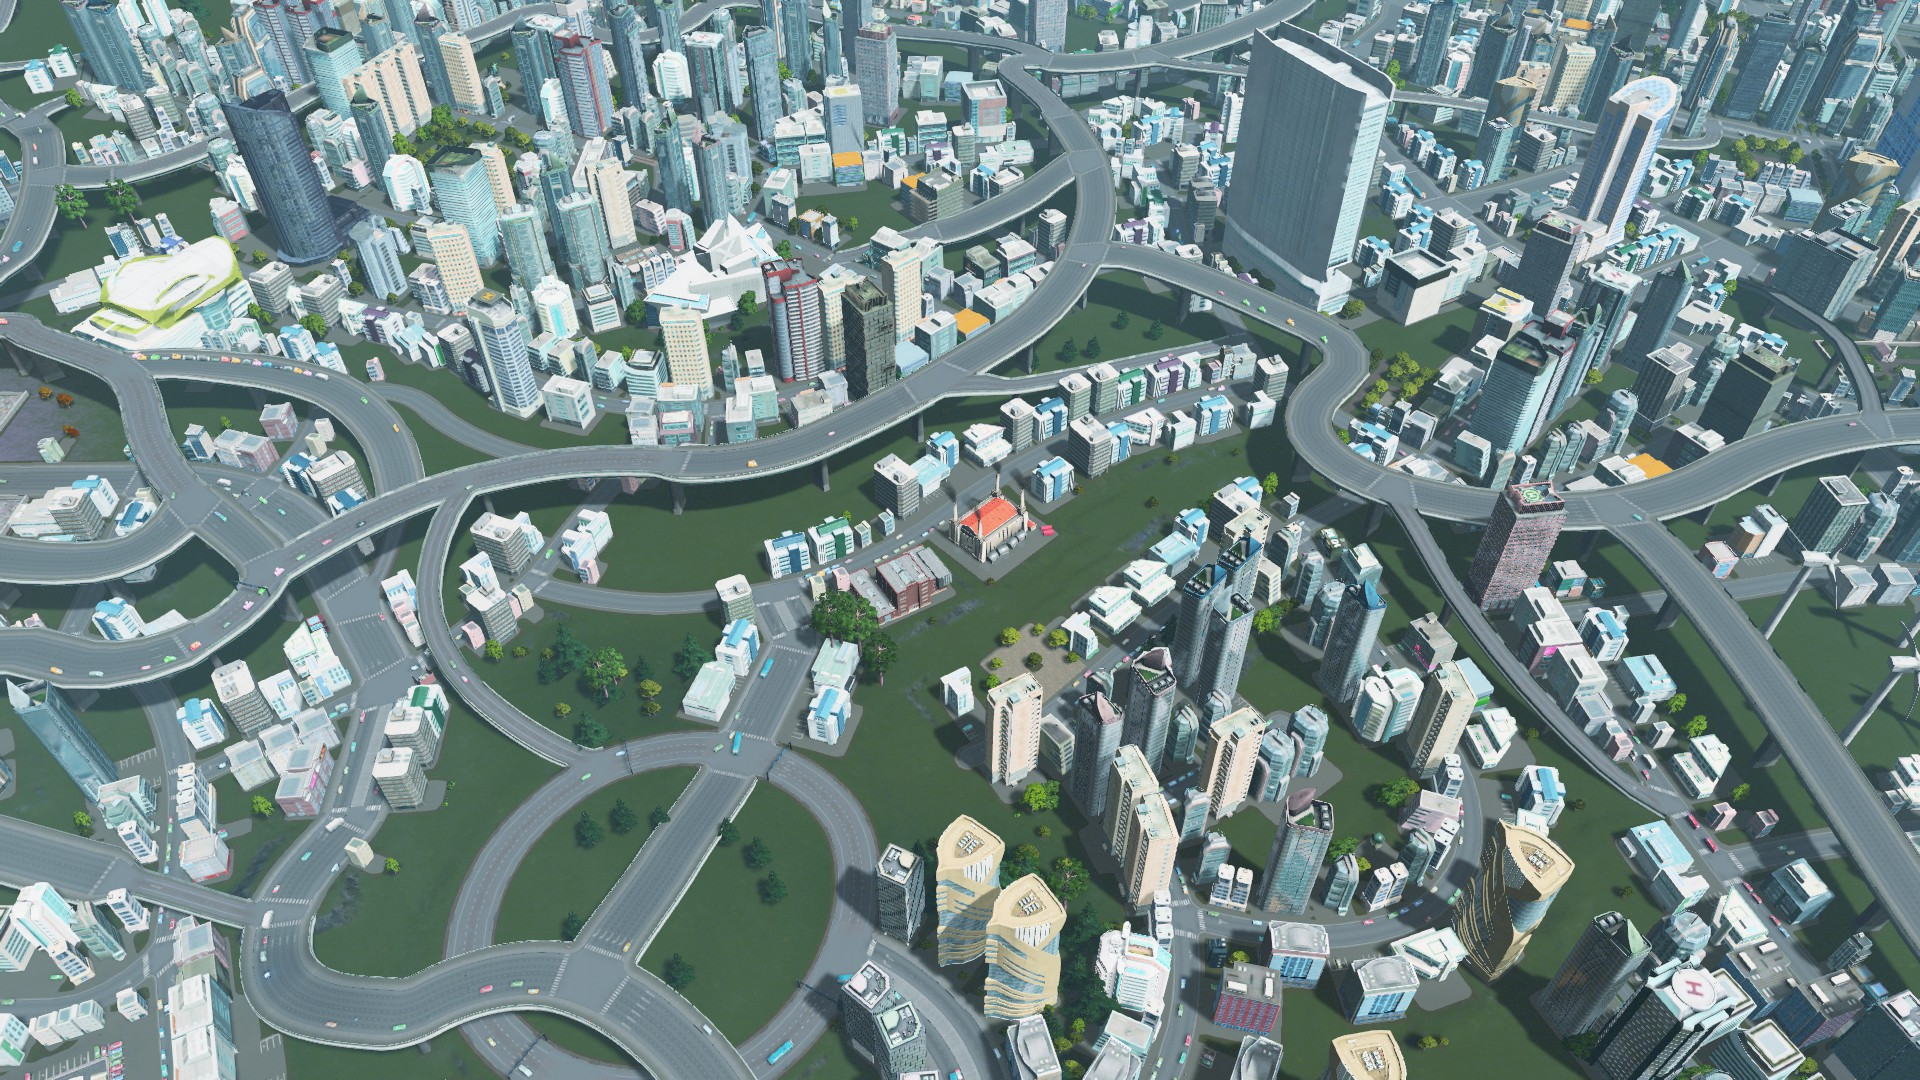 SimCity 3000 Coal Power Plant - Cities: Skylines Mod download